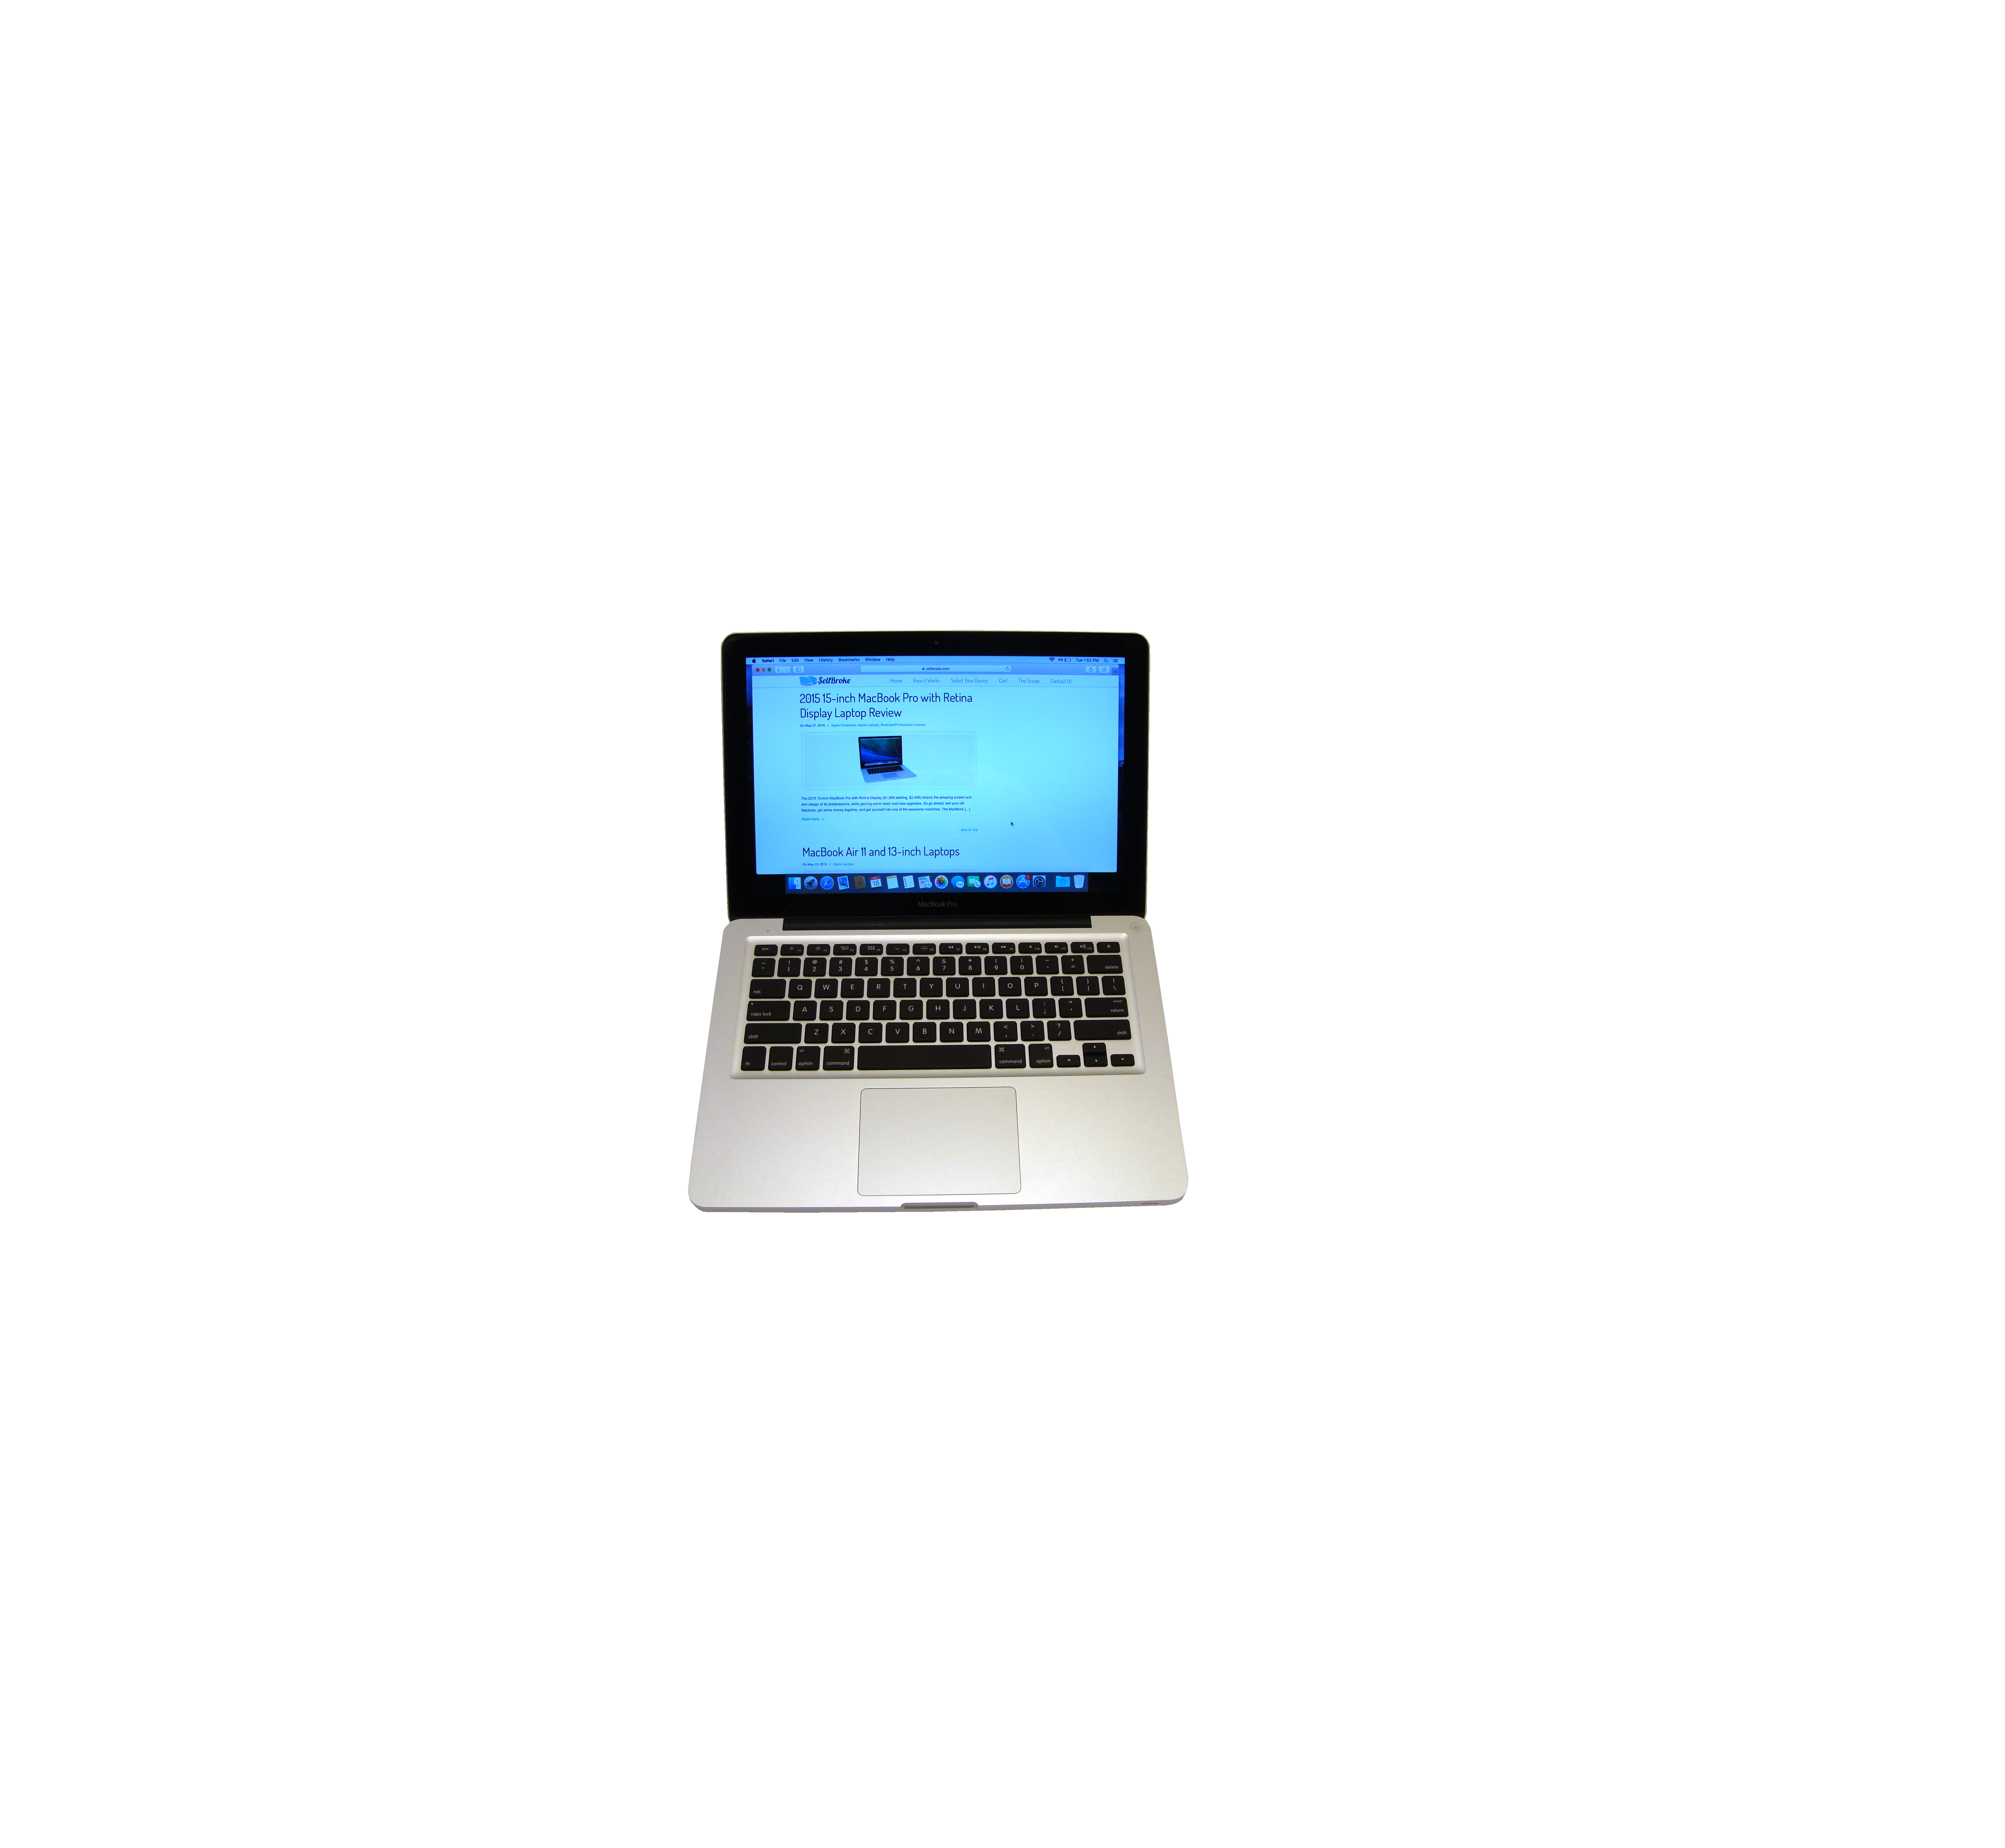 The classic MacBook Pro 13-inch A1278 | SellBroke